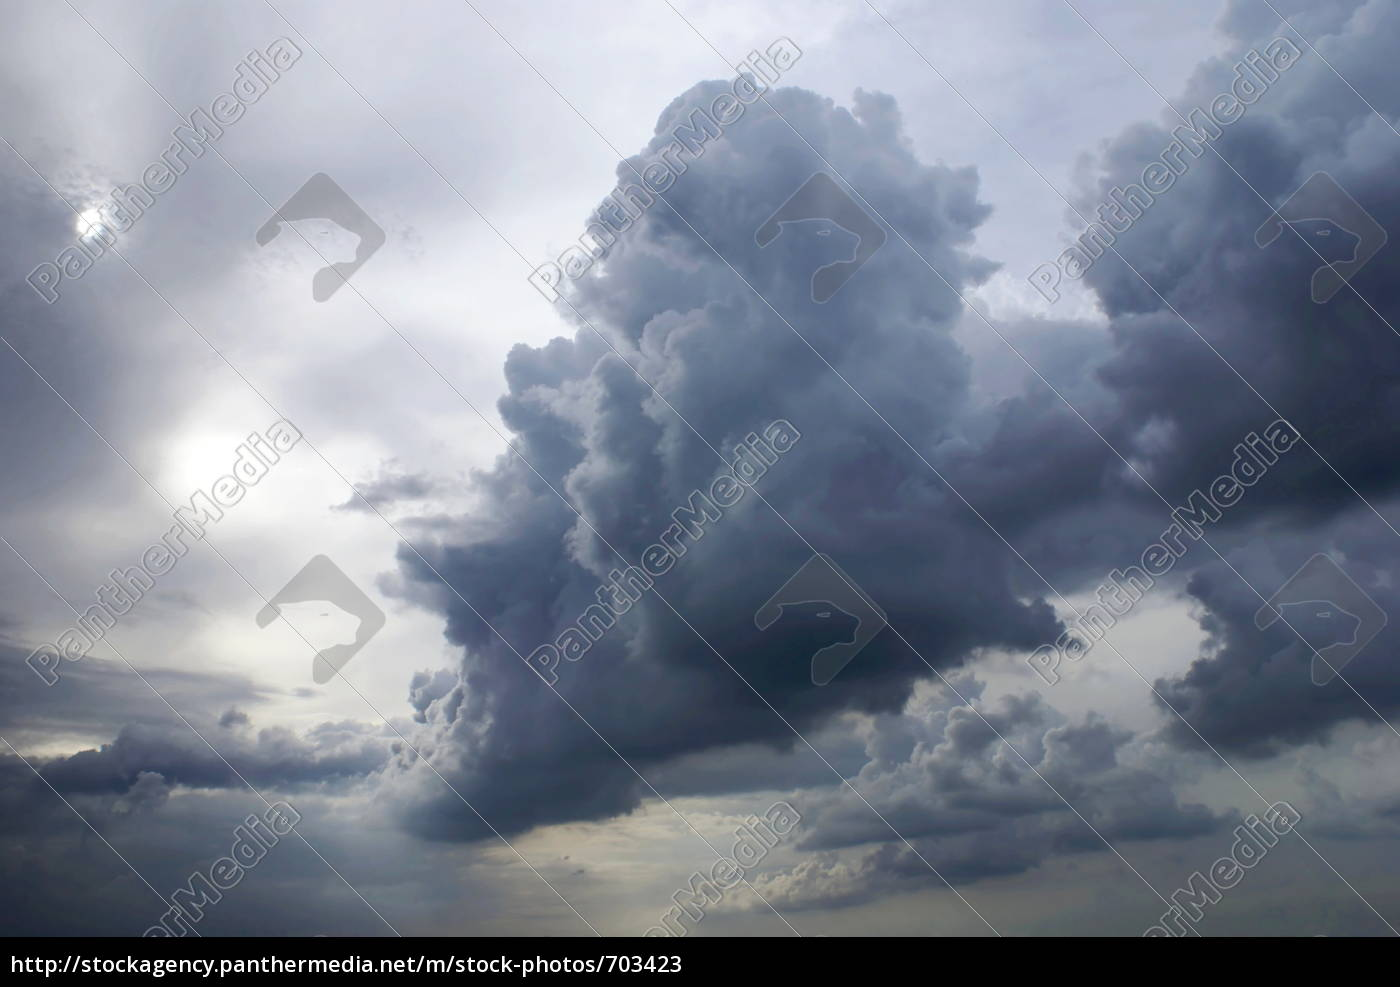 thunderclouds - 703423